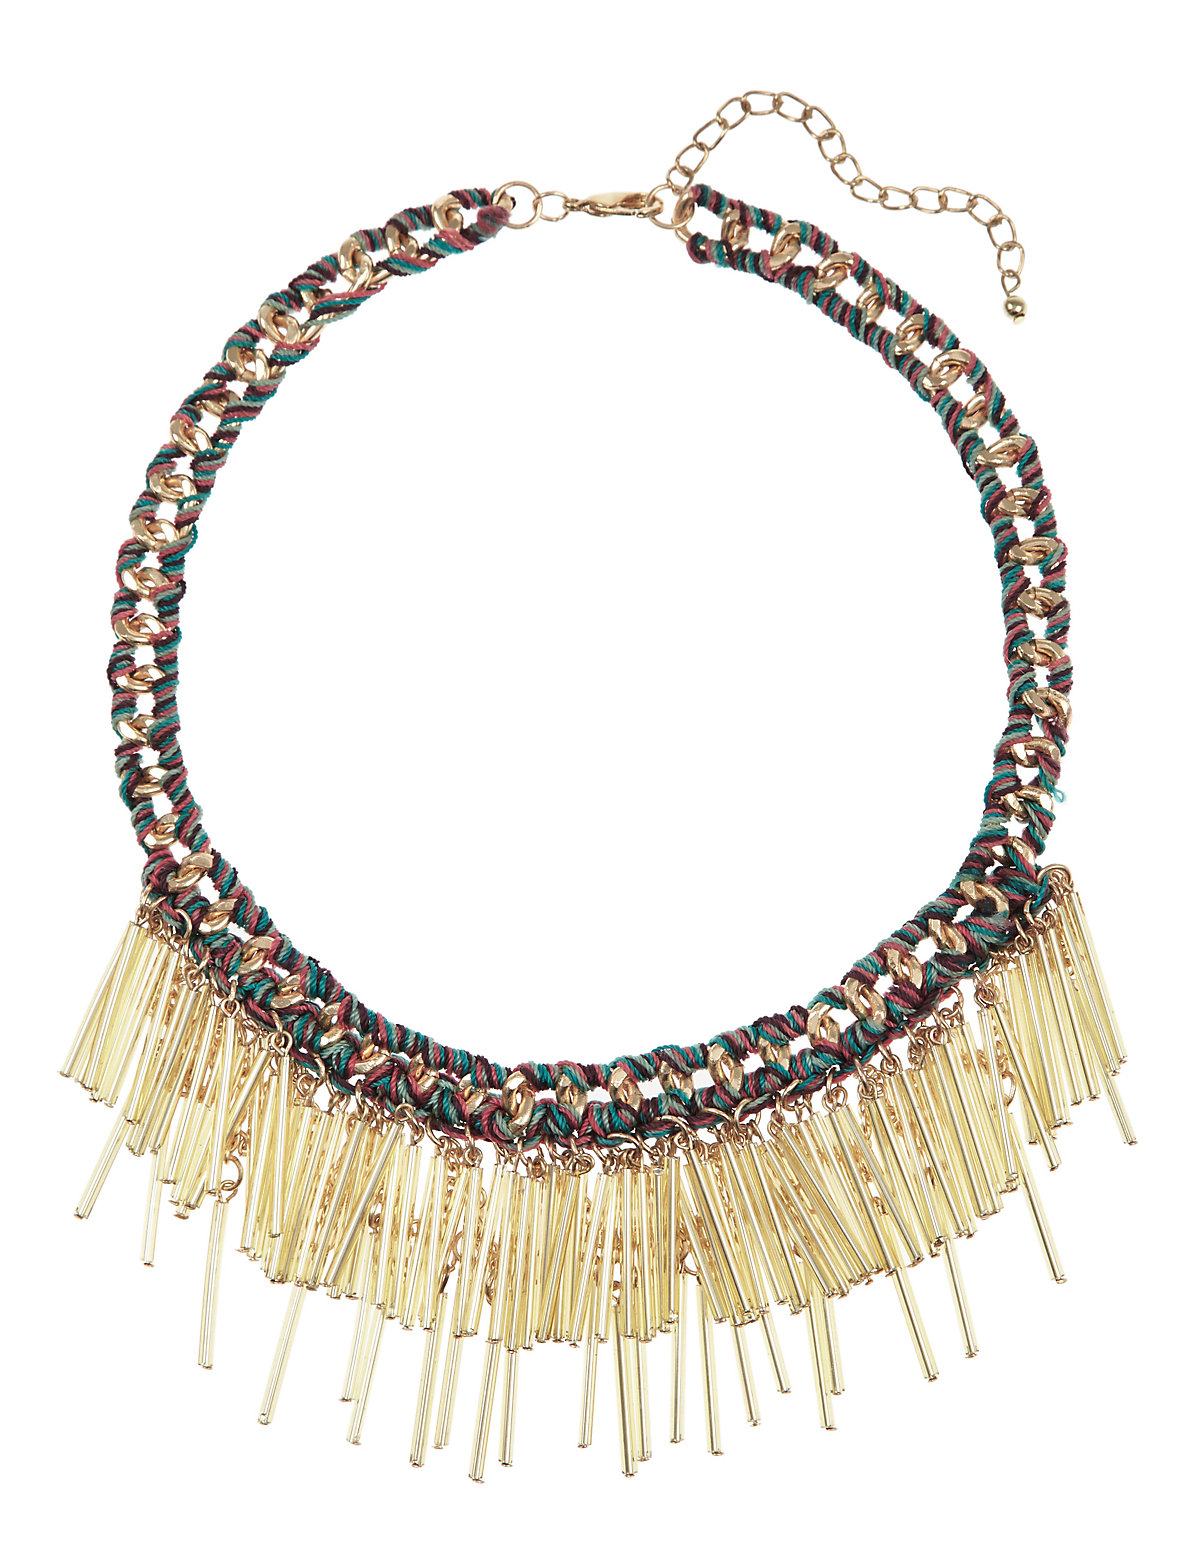 Bugle Bead Corded Necklace Cream One Size